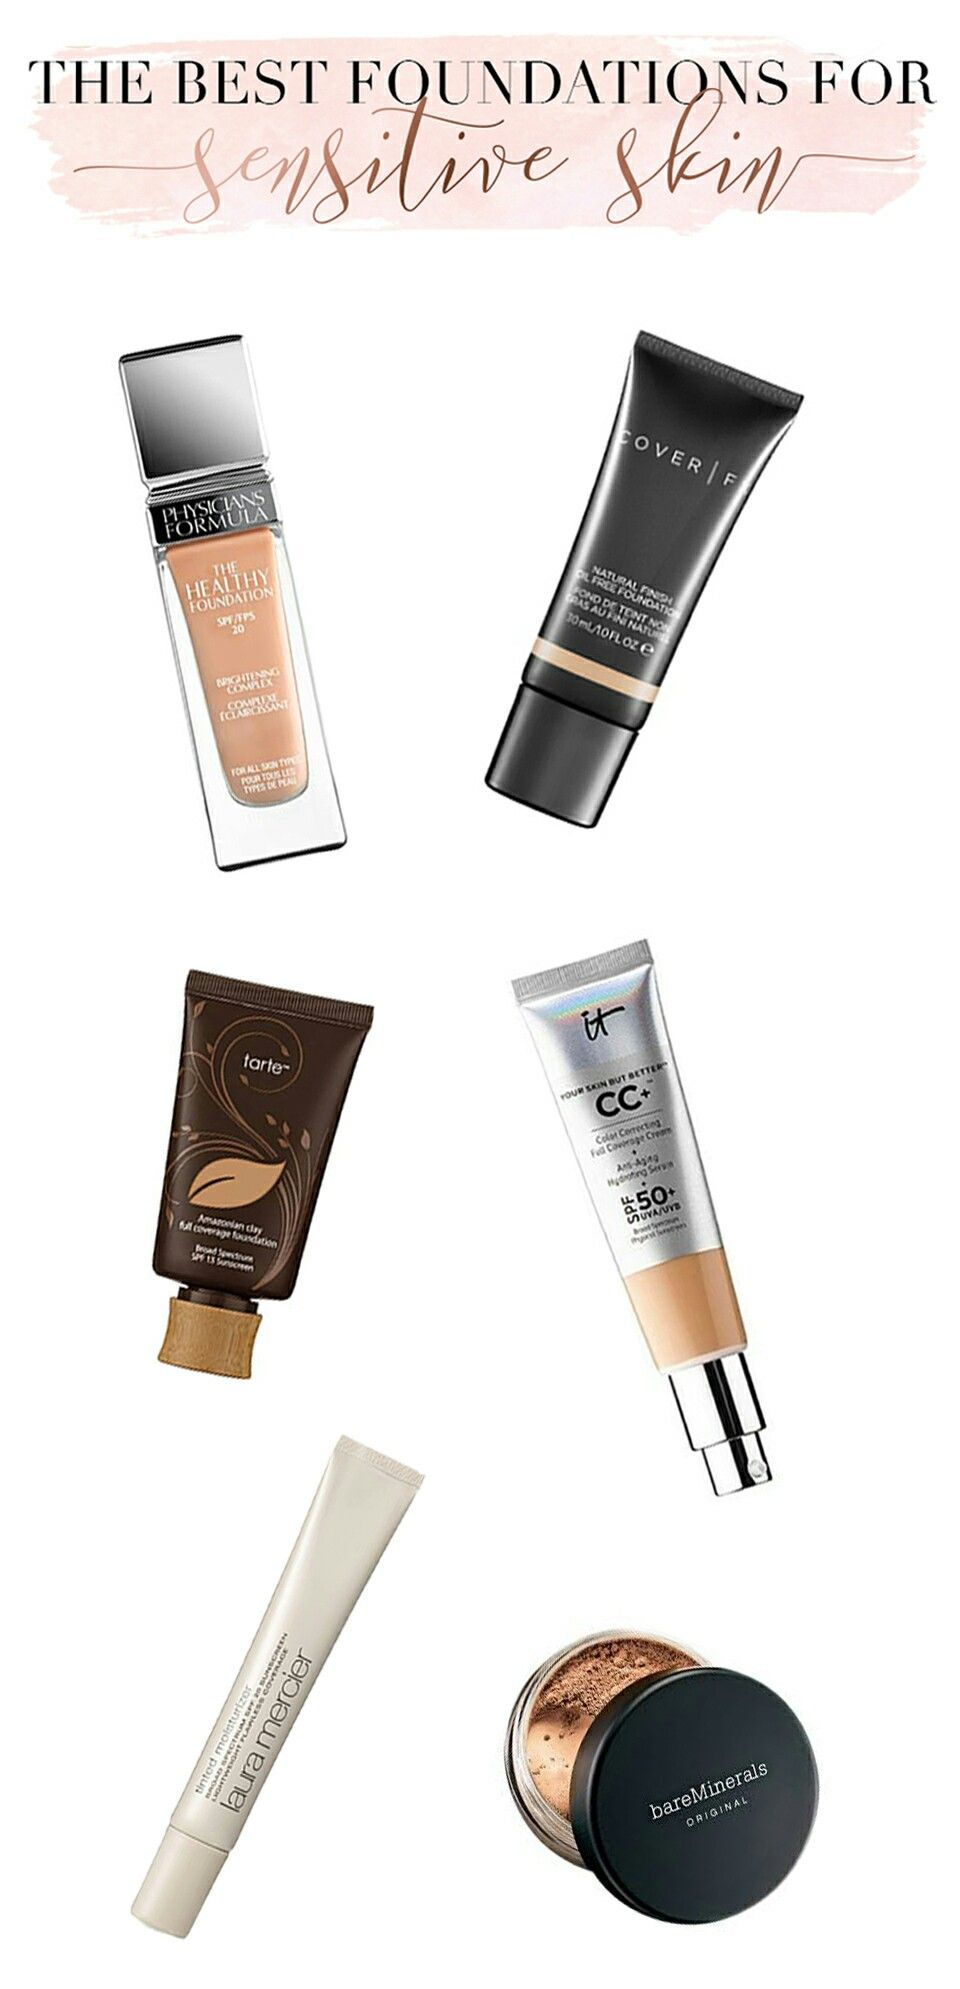 The Best Foundations For Sensitive Skin Foundation for